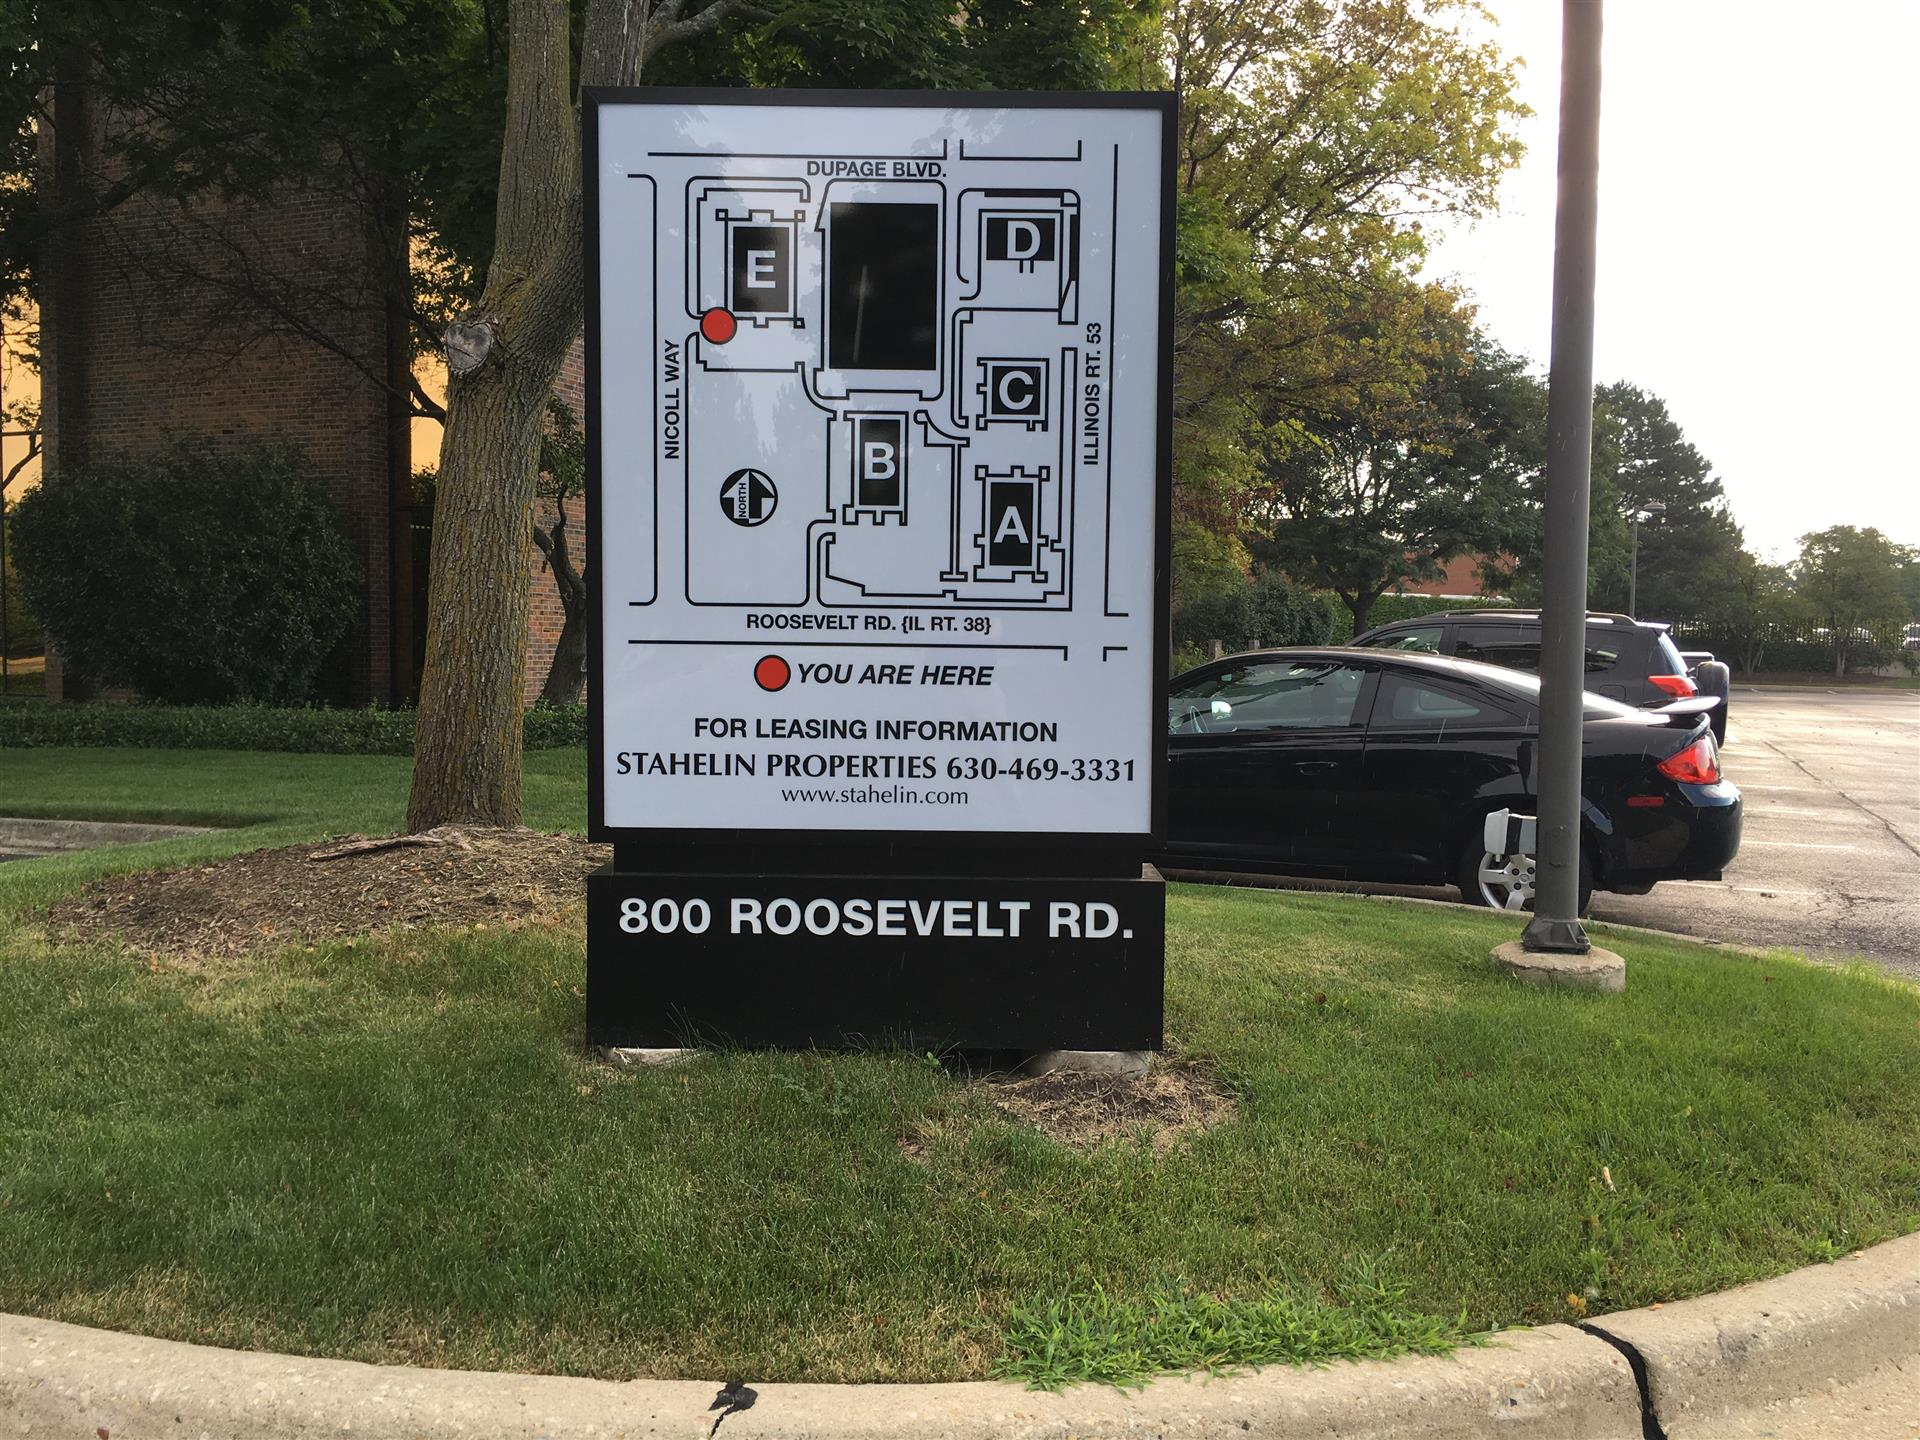 800 Roosevelt Rd Outdoor Business Wayfinding Sign